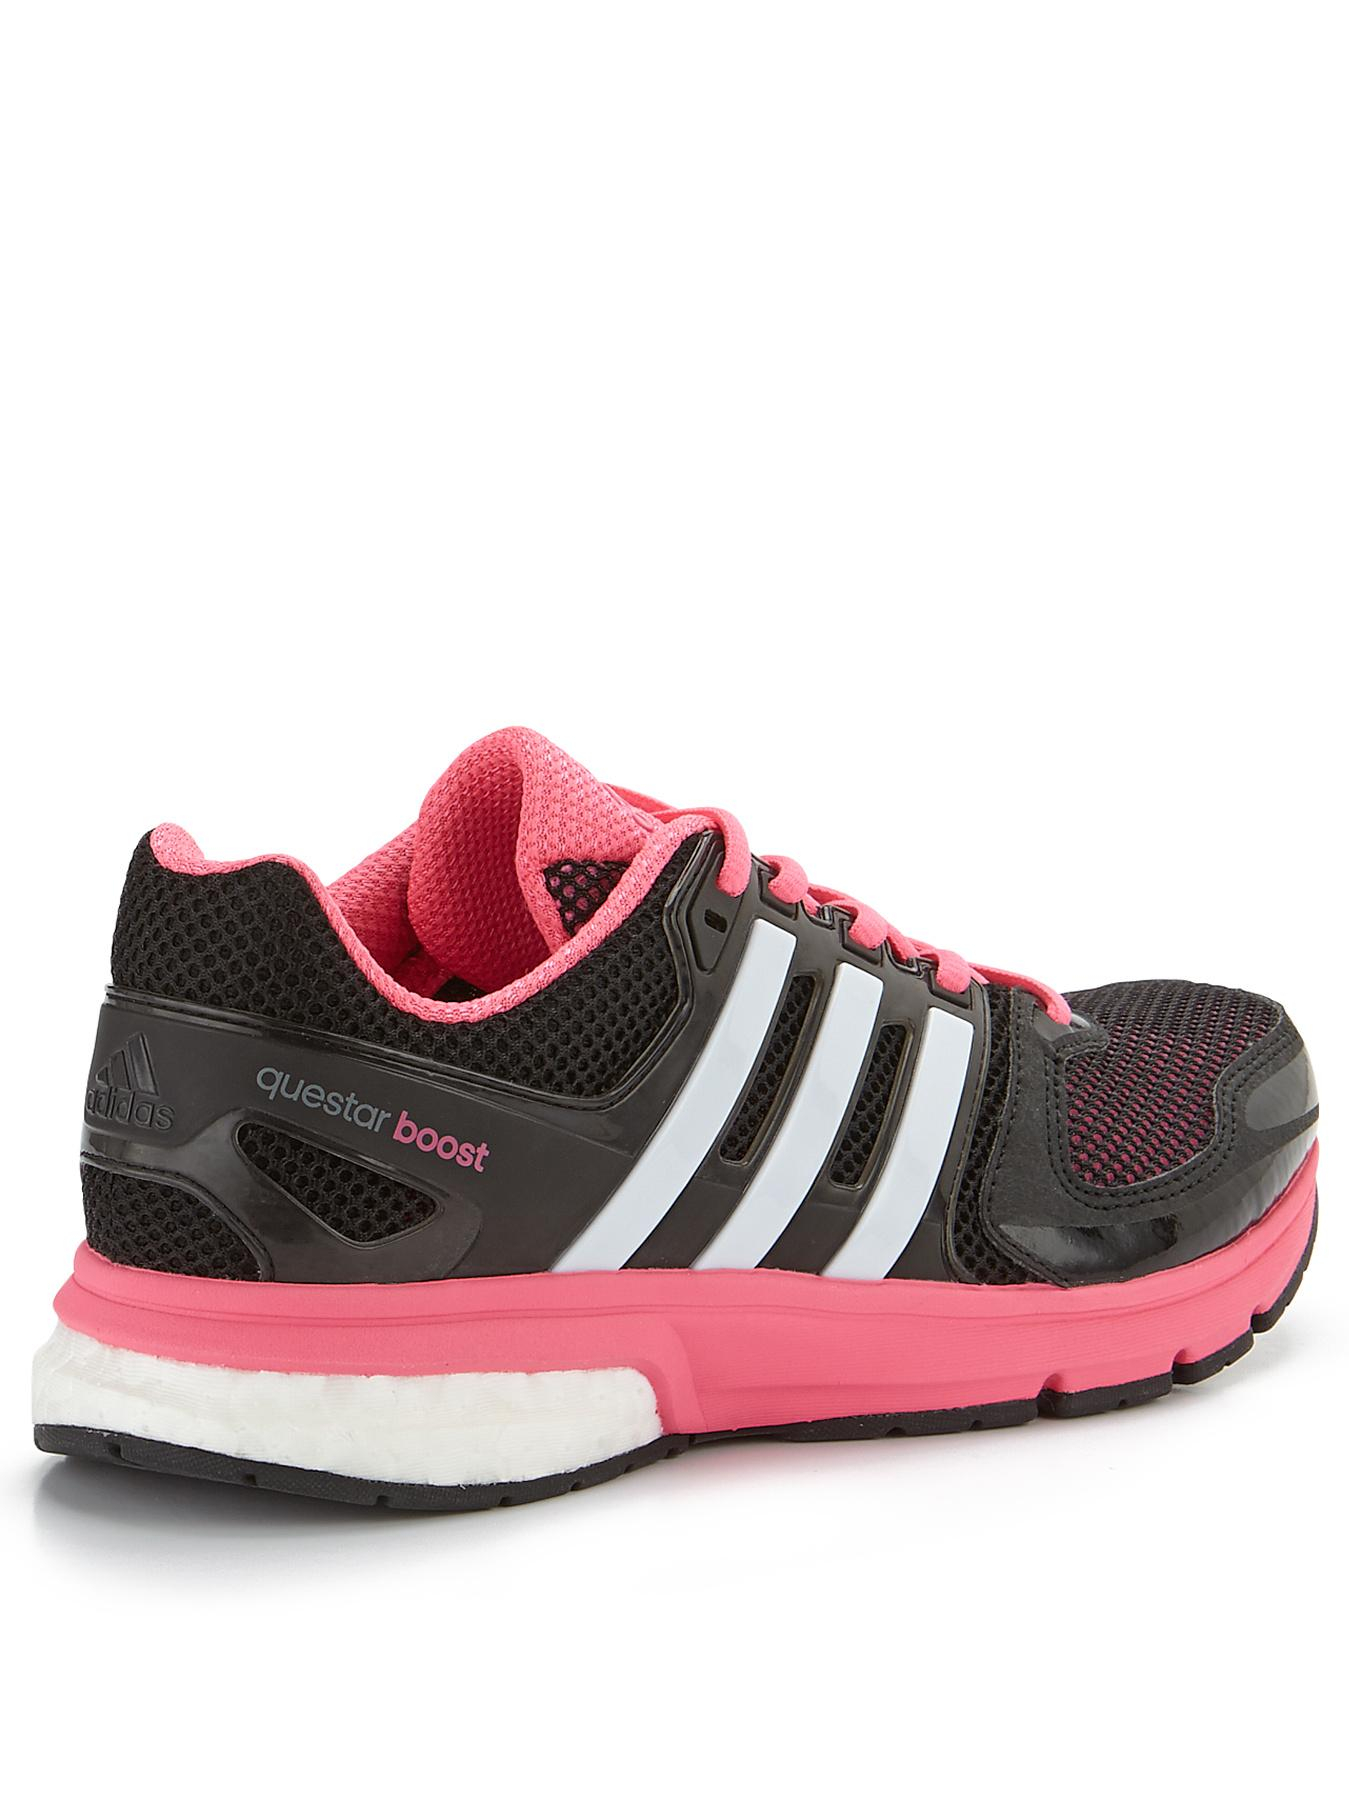 adidas boost black and pink